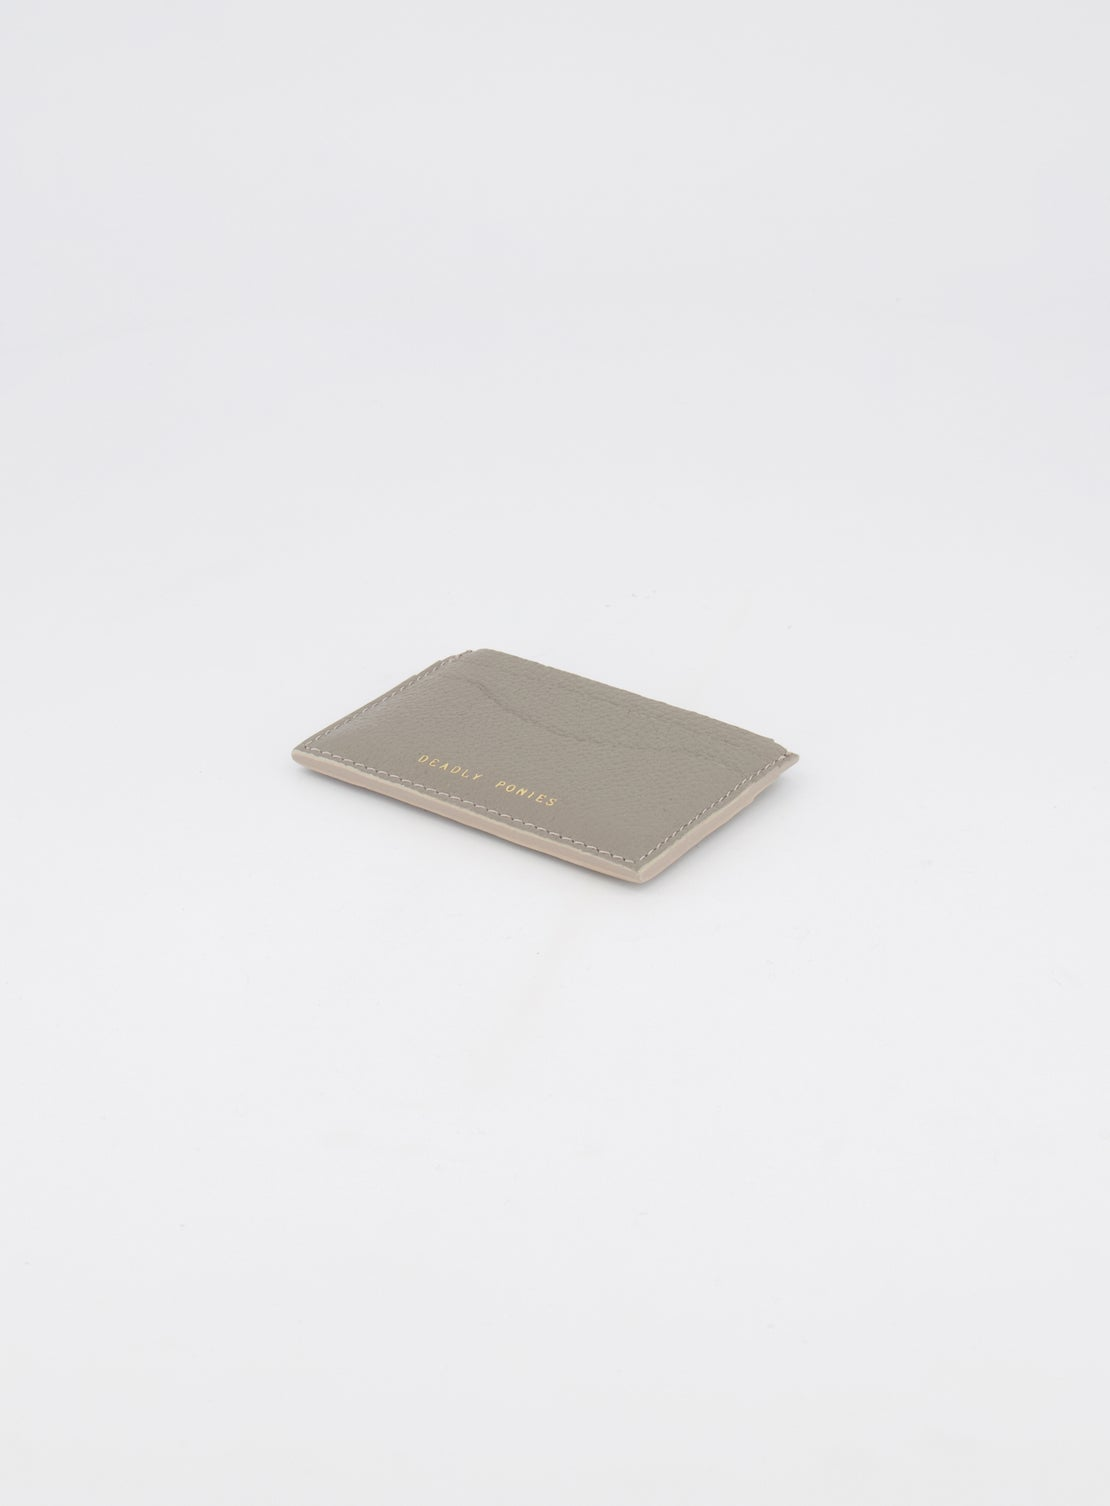 Deadly Ponies Card File - Pewter